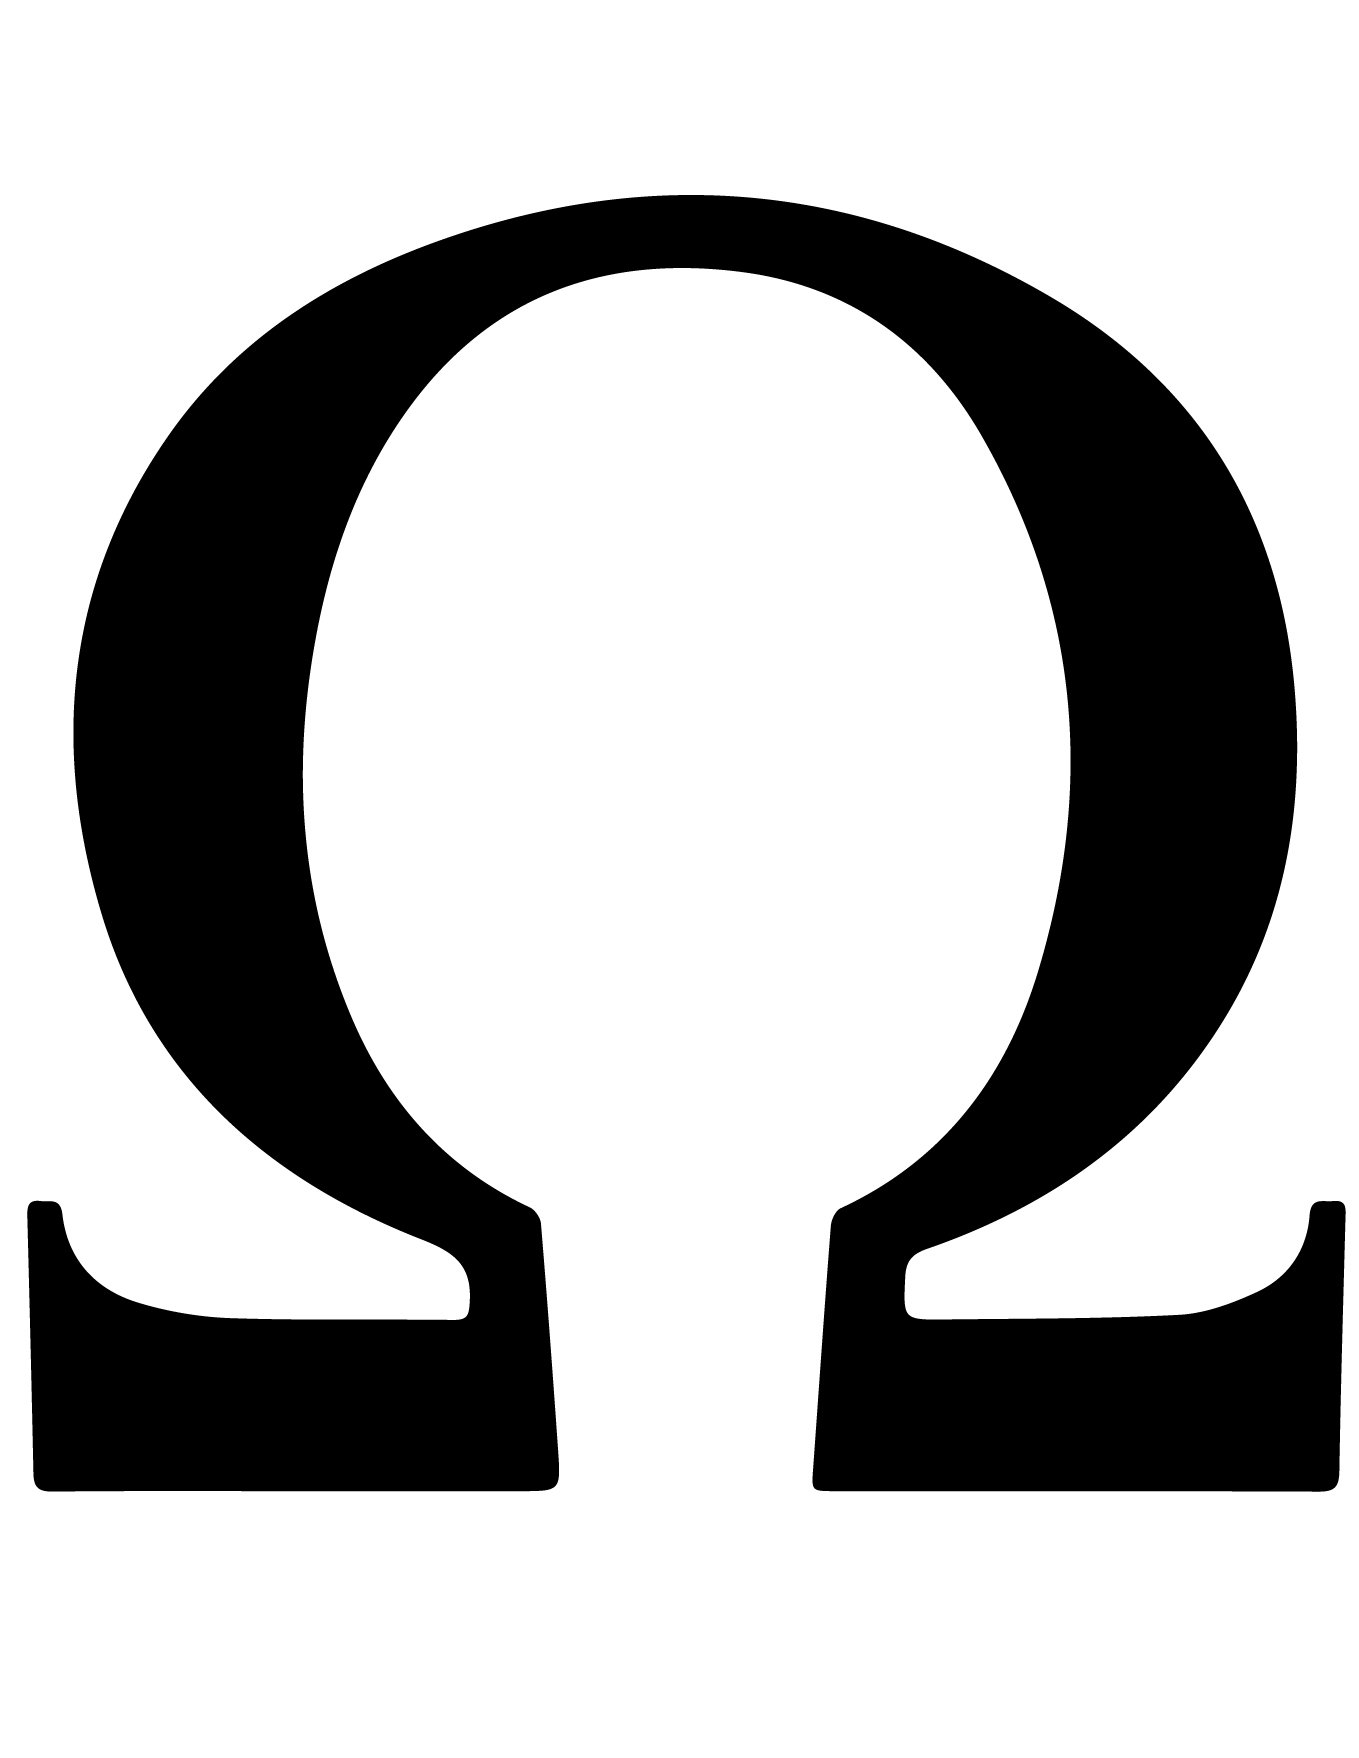 Omega symbolsign and its meaning mythologian it also represents the value of 800 in the greek numeric system which literally means a great value or the great o biocorpaavc Choice Image